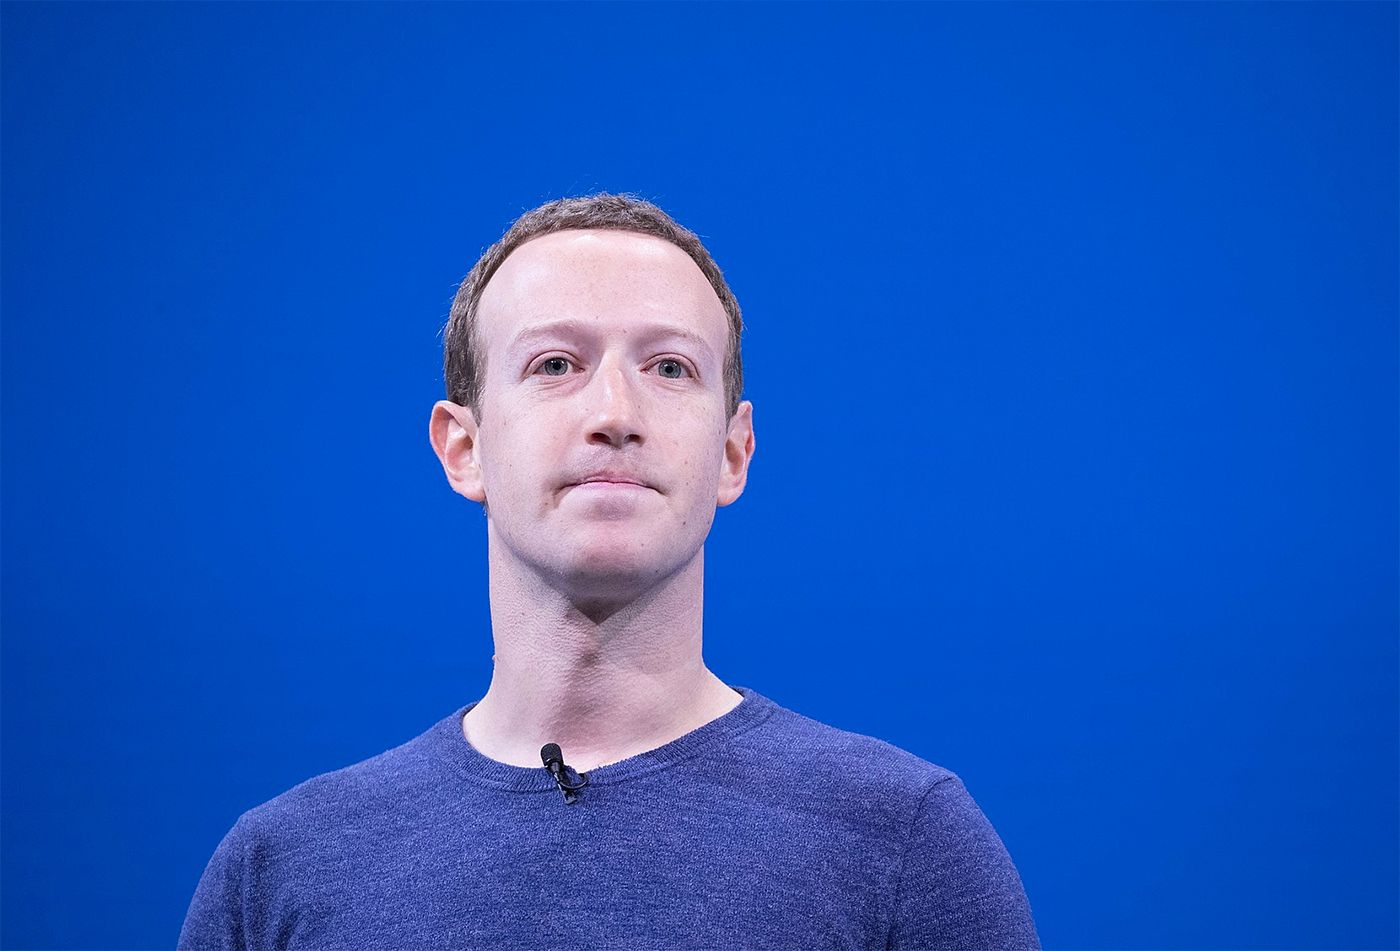 #DeleteFacebook Trending Again After News That Zuckerberg Met With Tucker Carlson, Other Right-Wing Loons